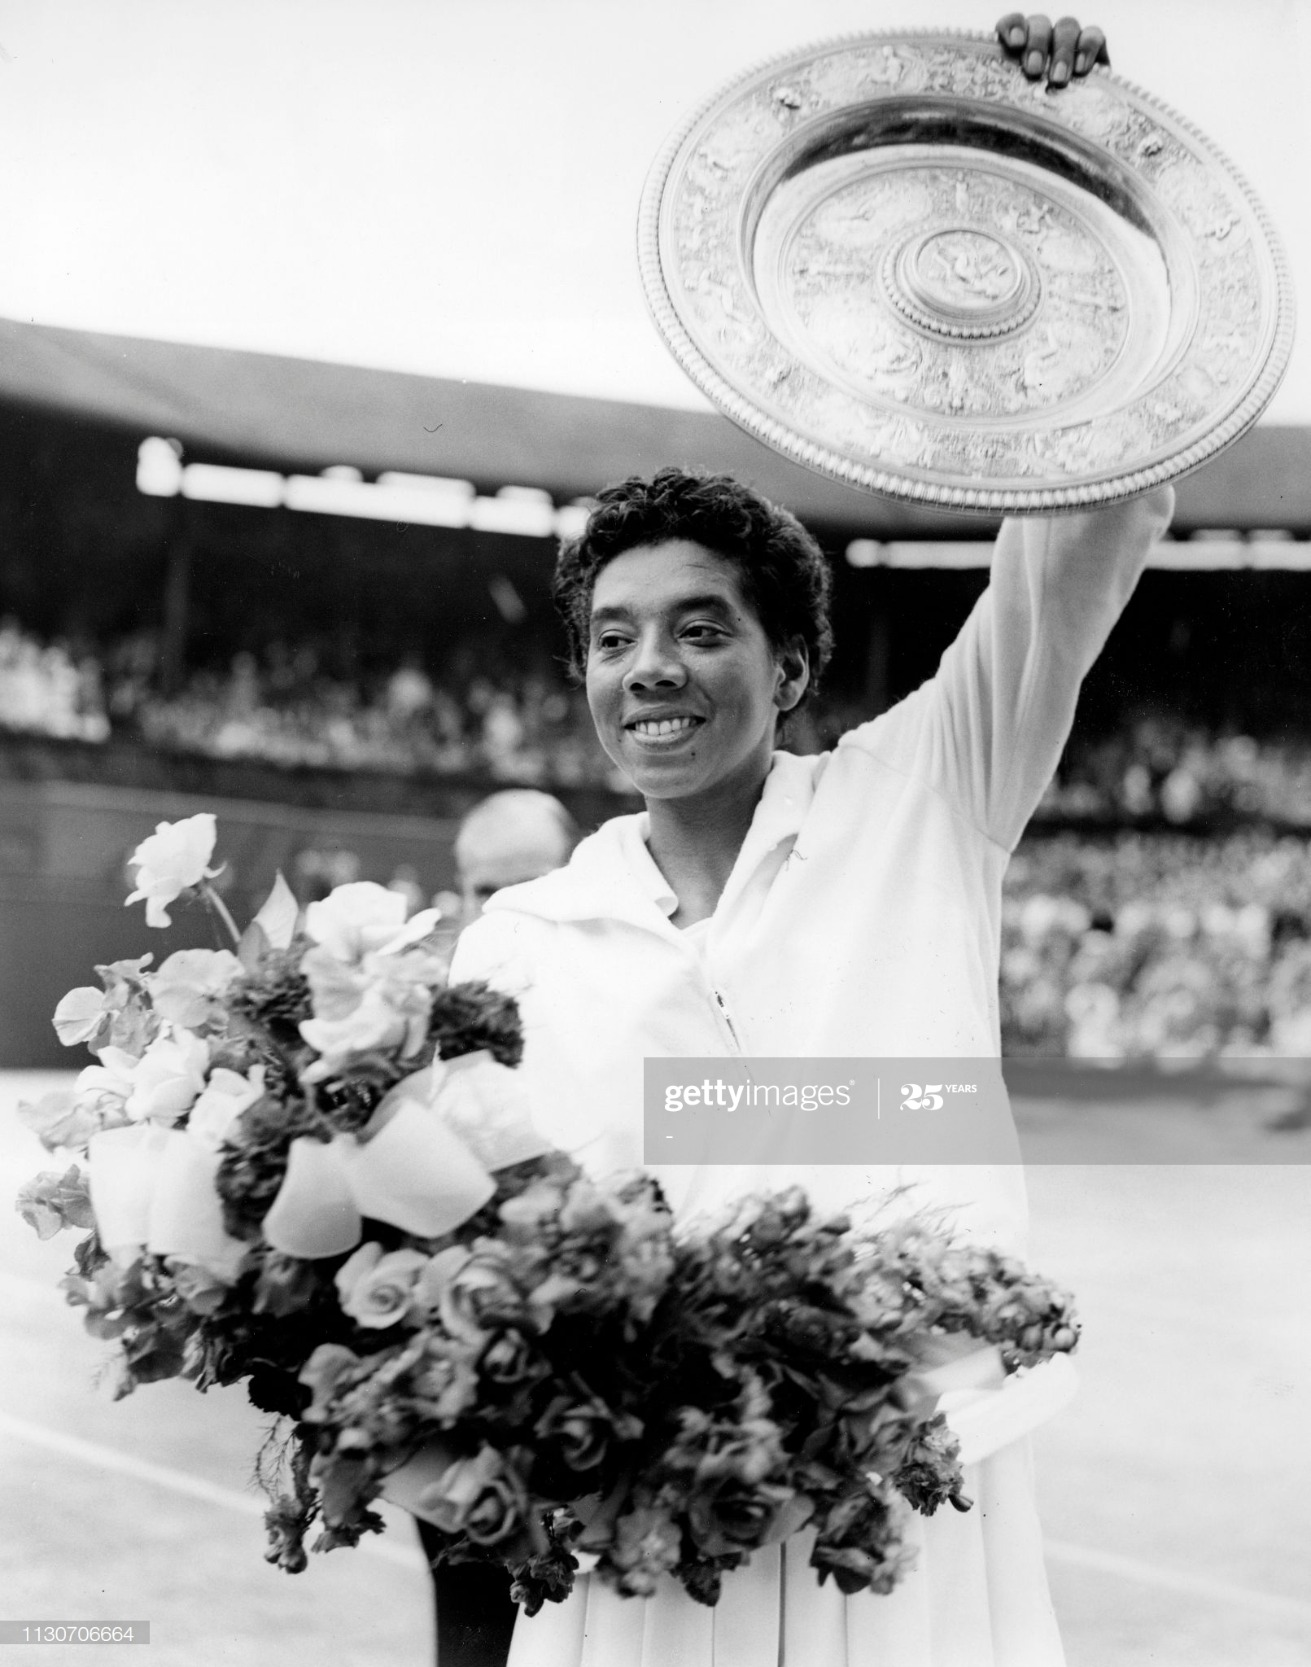 TENNIS-WIMBLEDON-ALTHEA GIBSON : News Photo